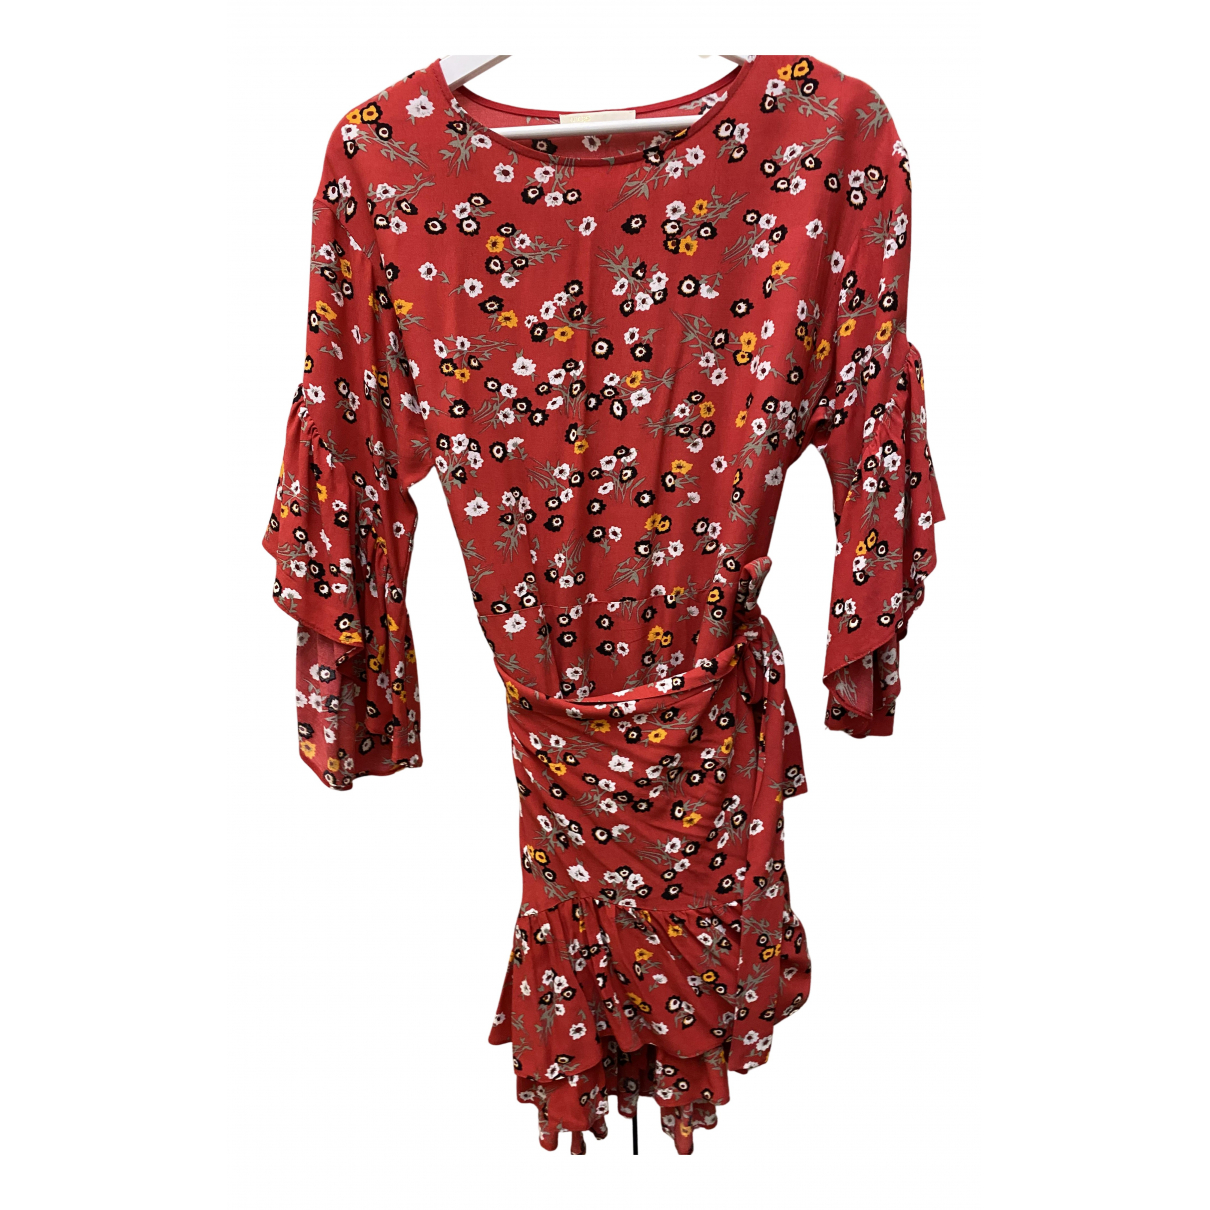 Maje N Red dress for Women 1 US